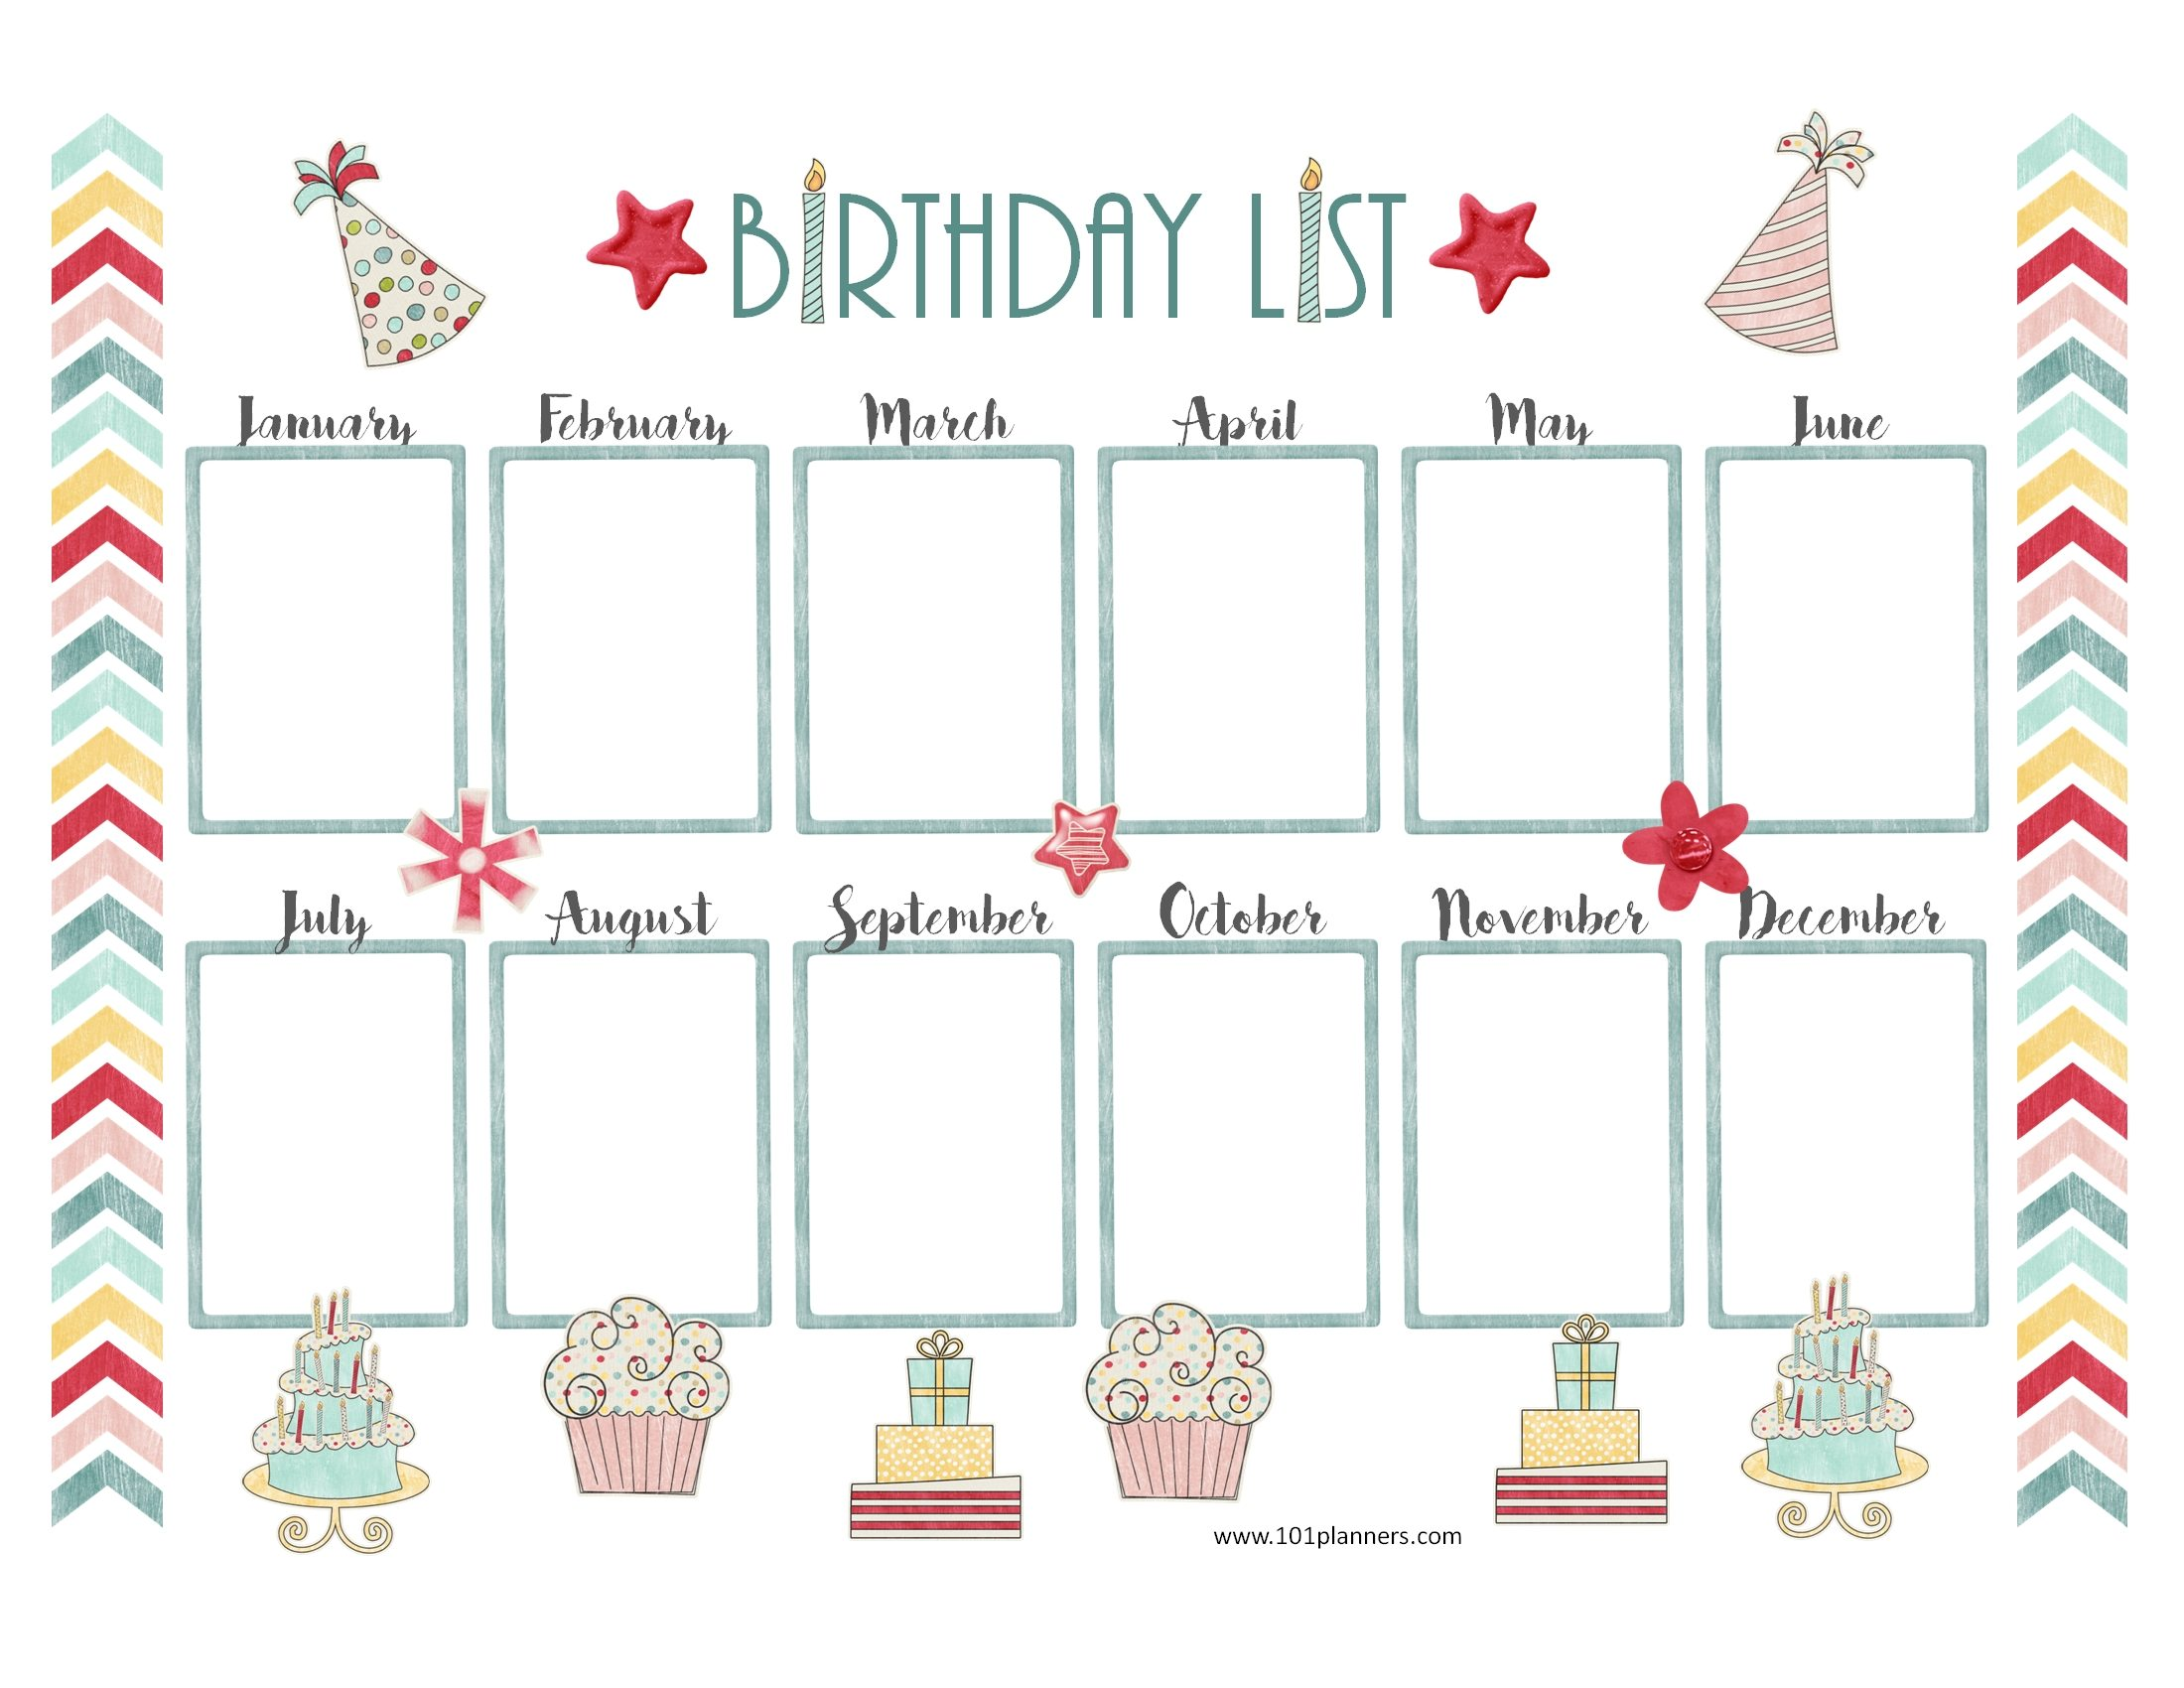 birthday calendar design templates ; birthday-calendar-template-2